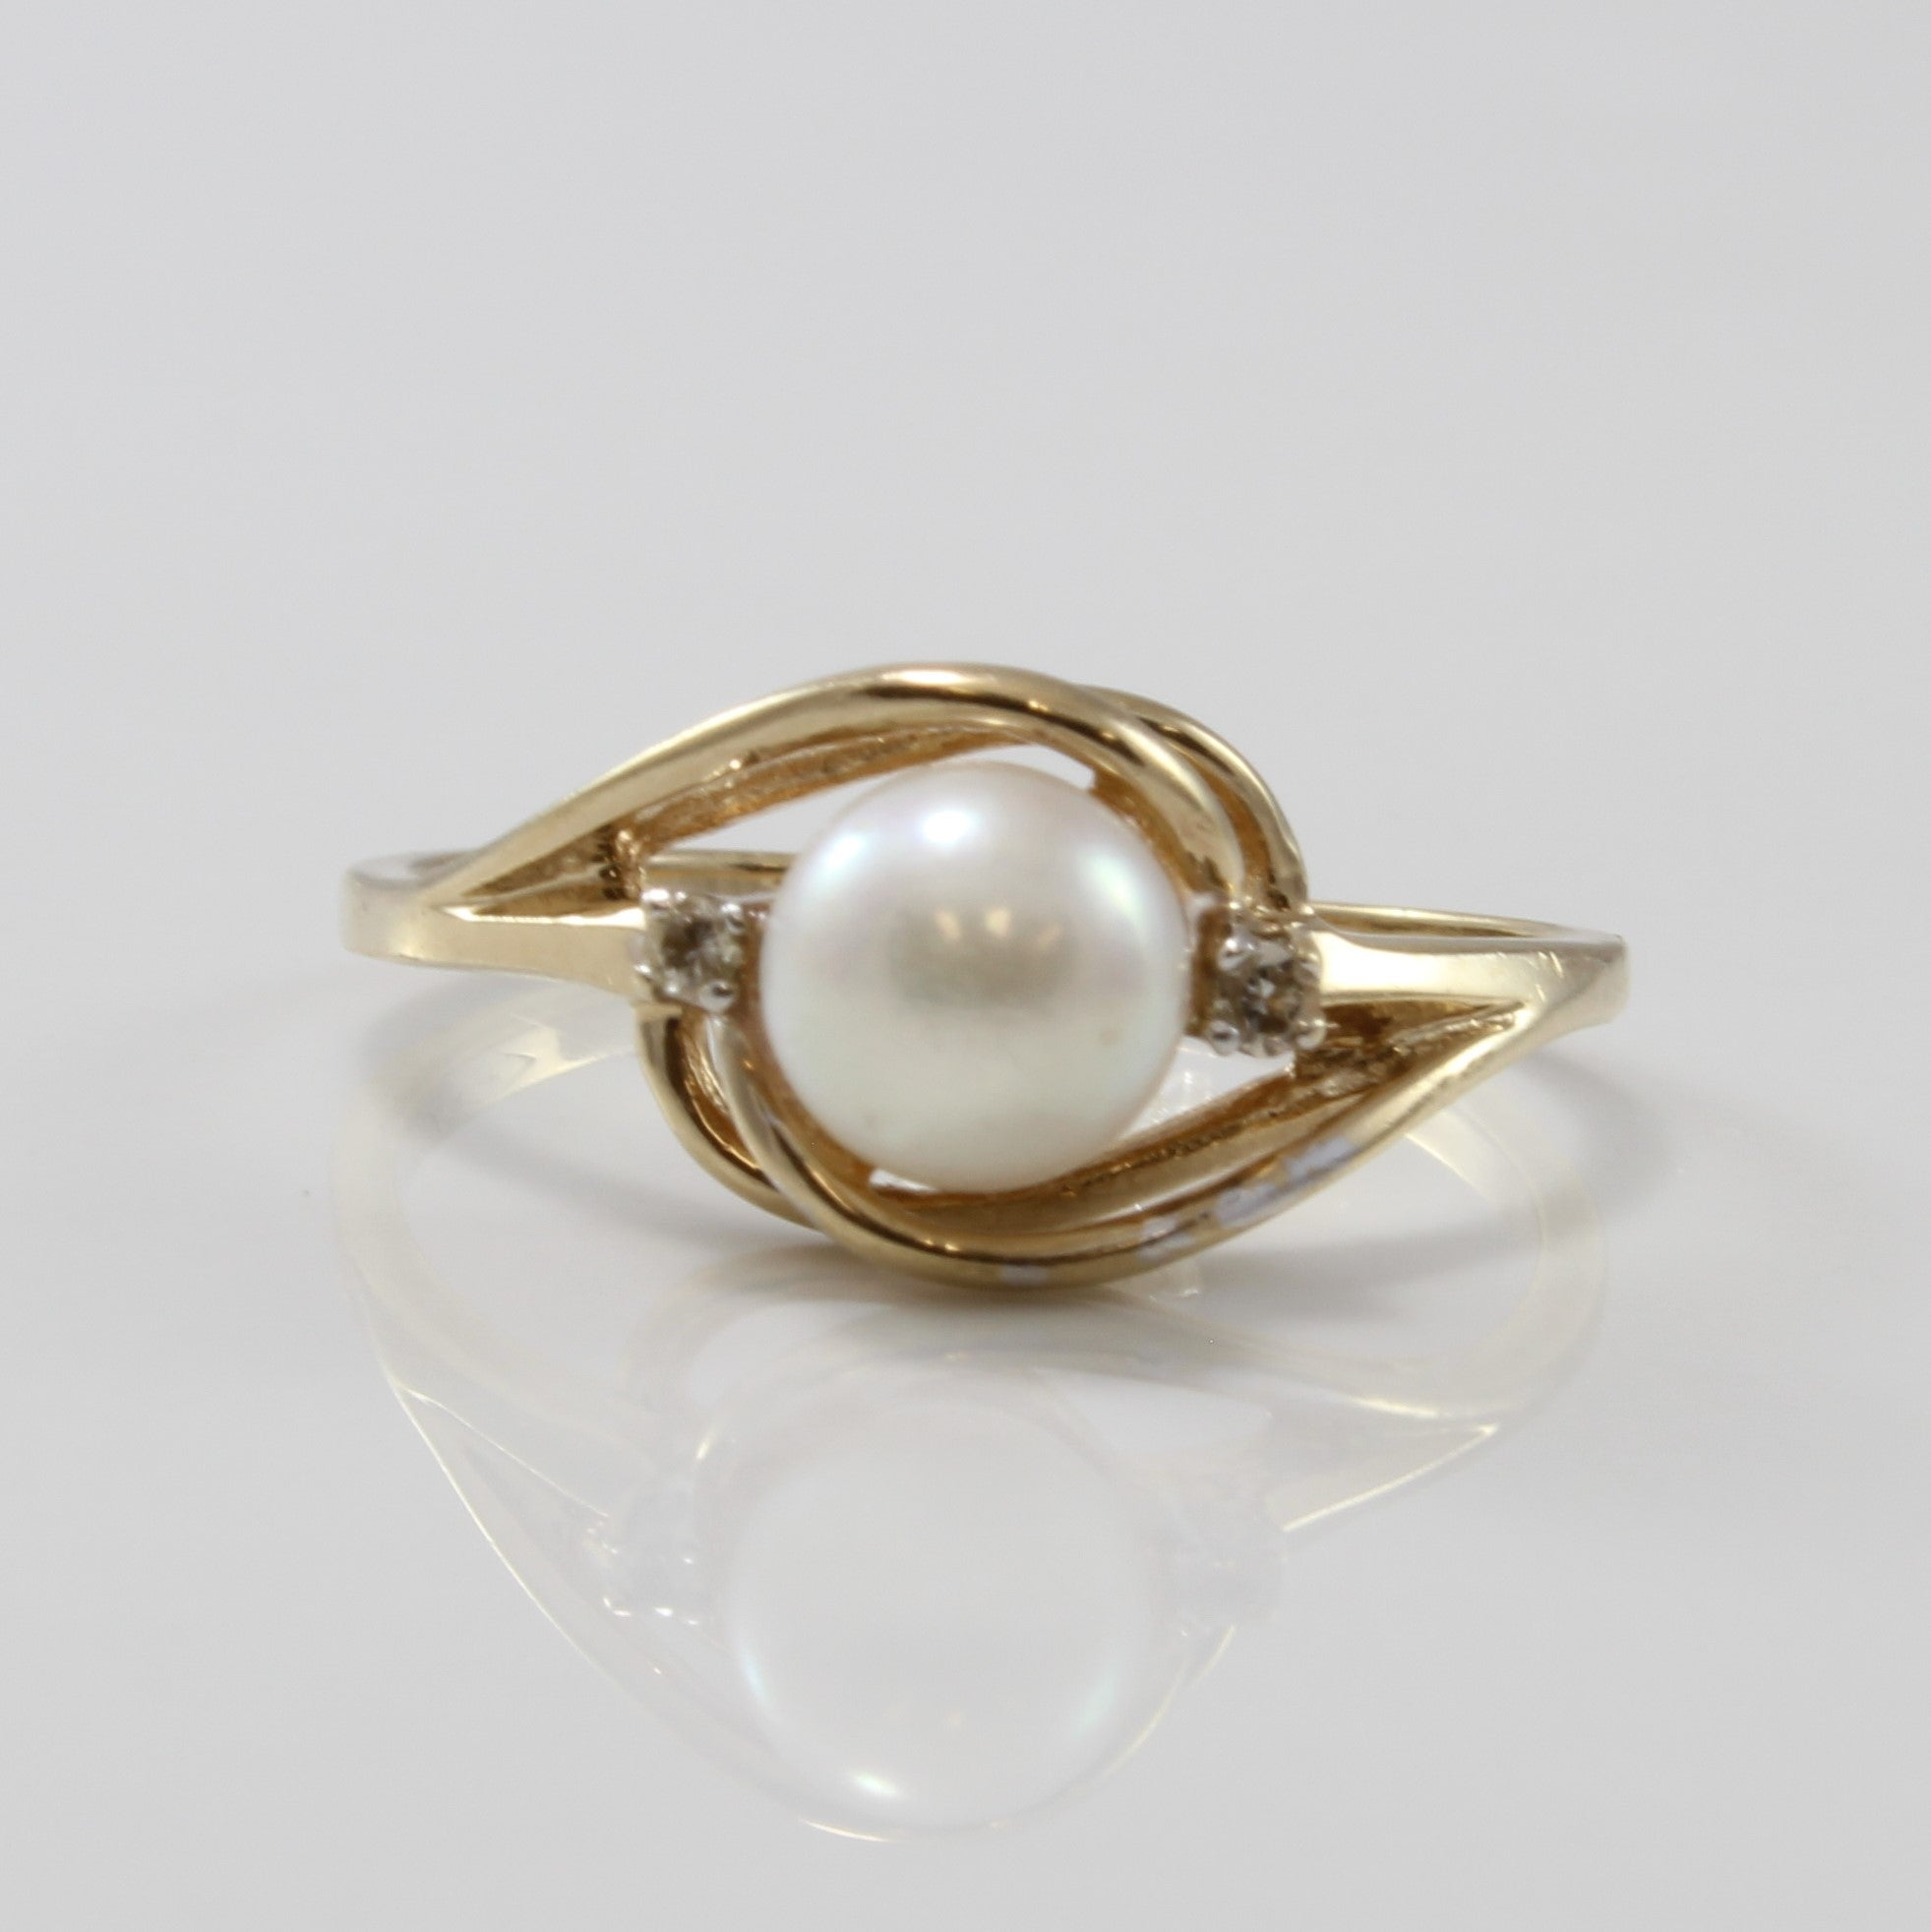 Pearl Ring With Diamond Accents | 1.40ct, 0.02ctw | SZ 6.5 |